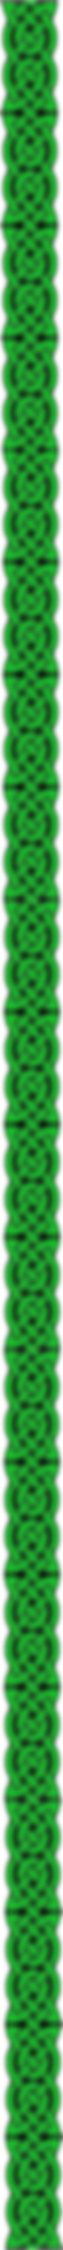 Celtic_knot_border_extended.png